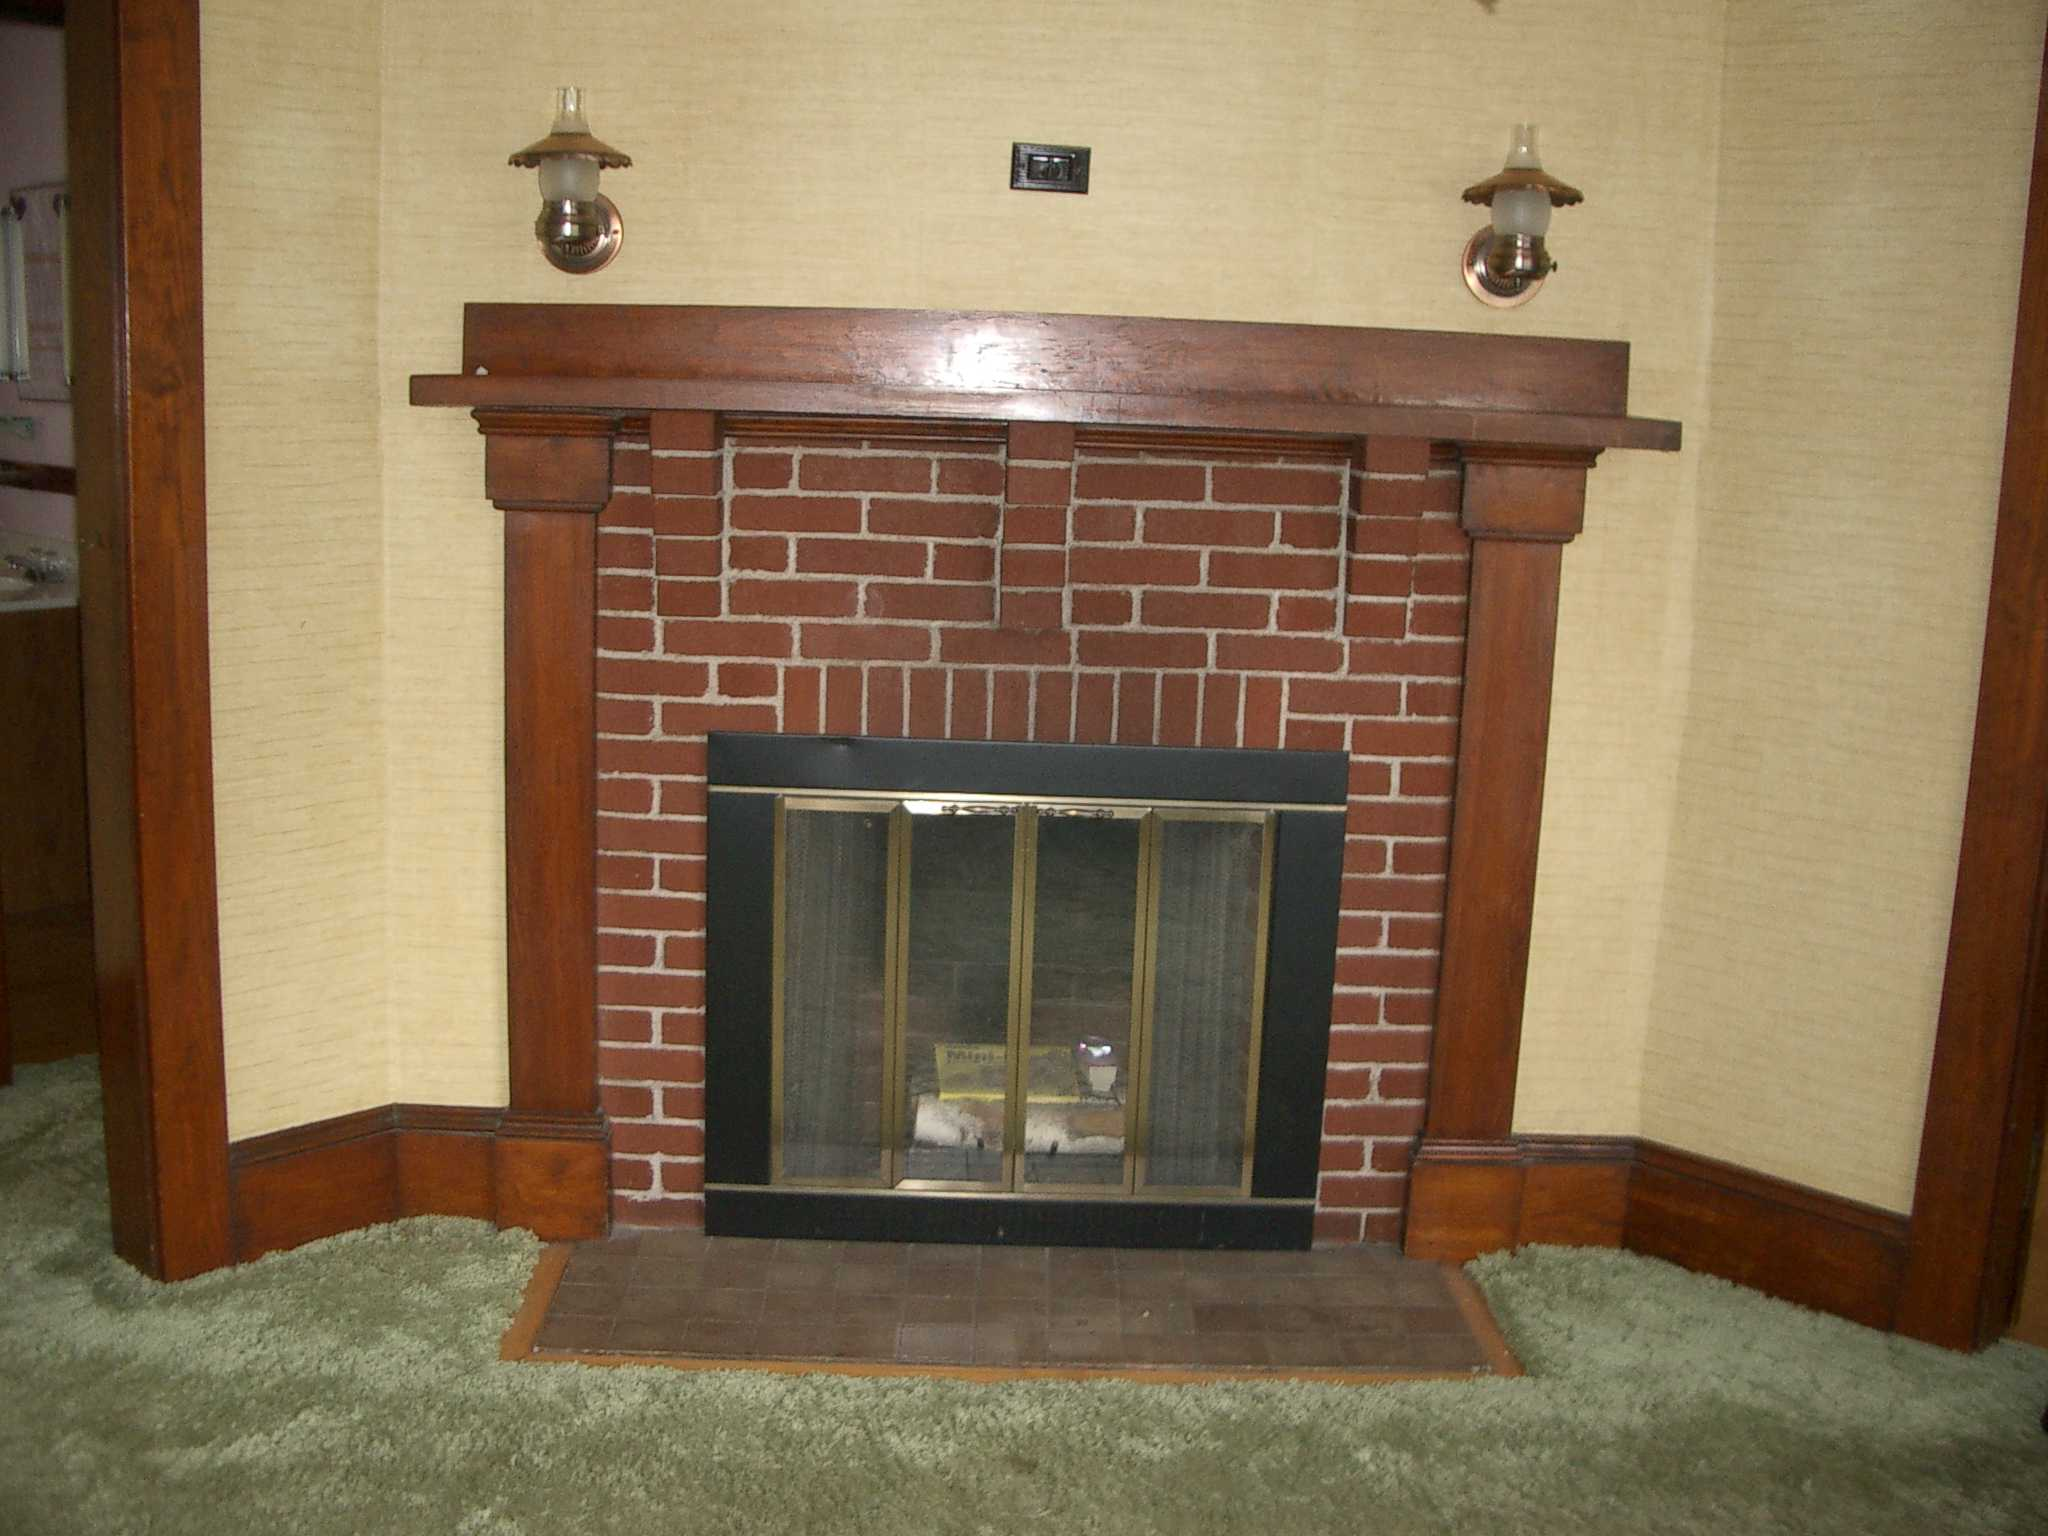 mfireplace.jpg